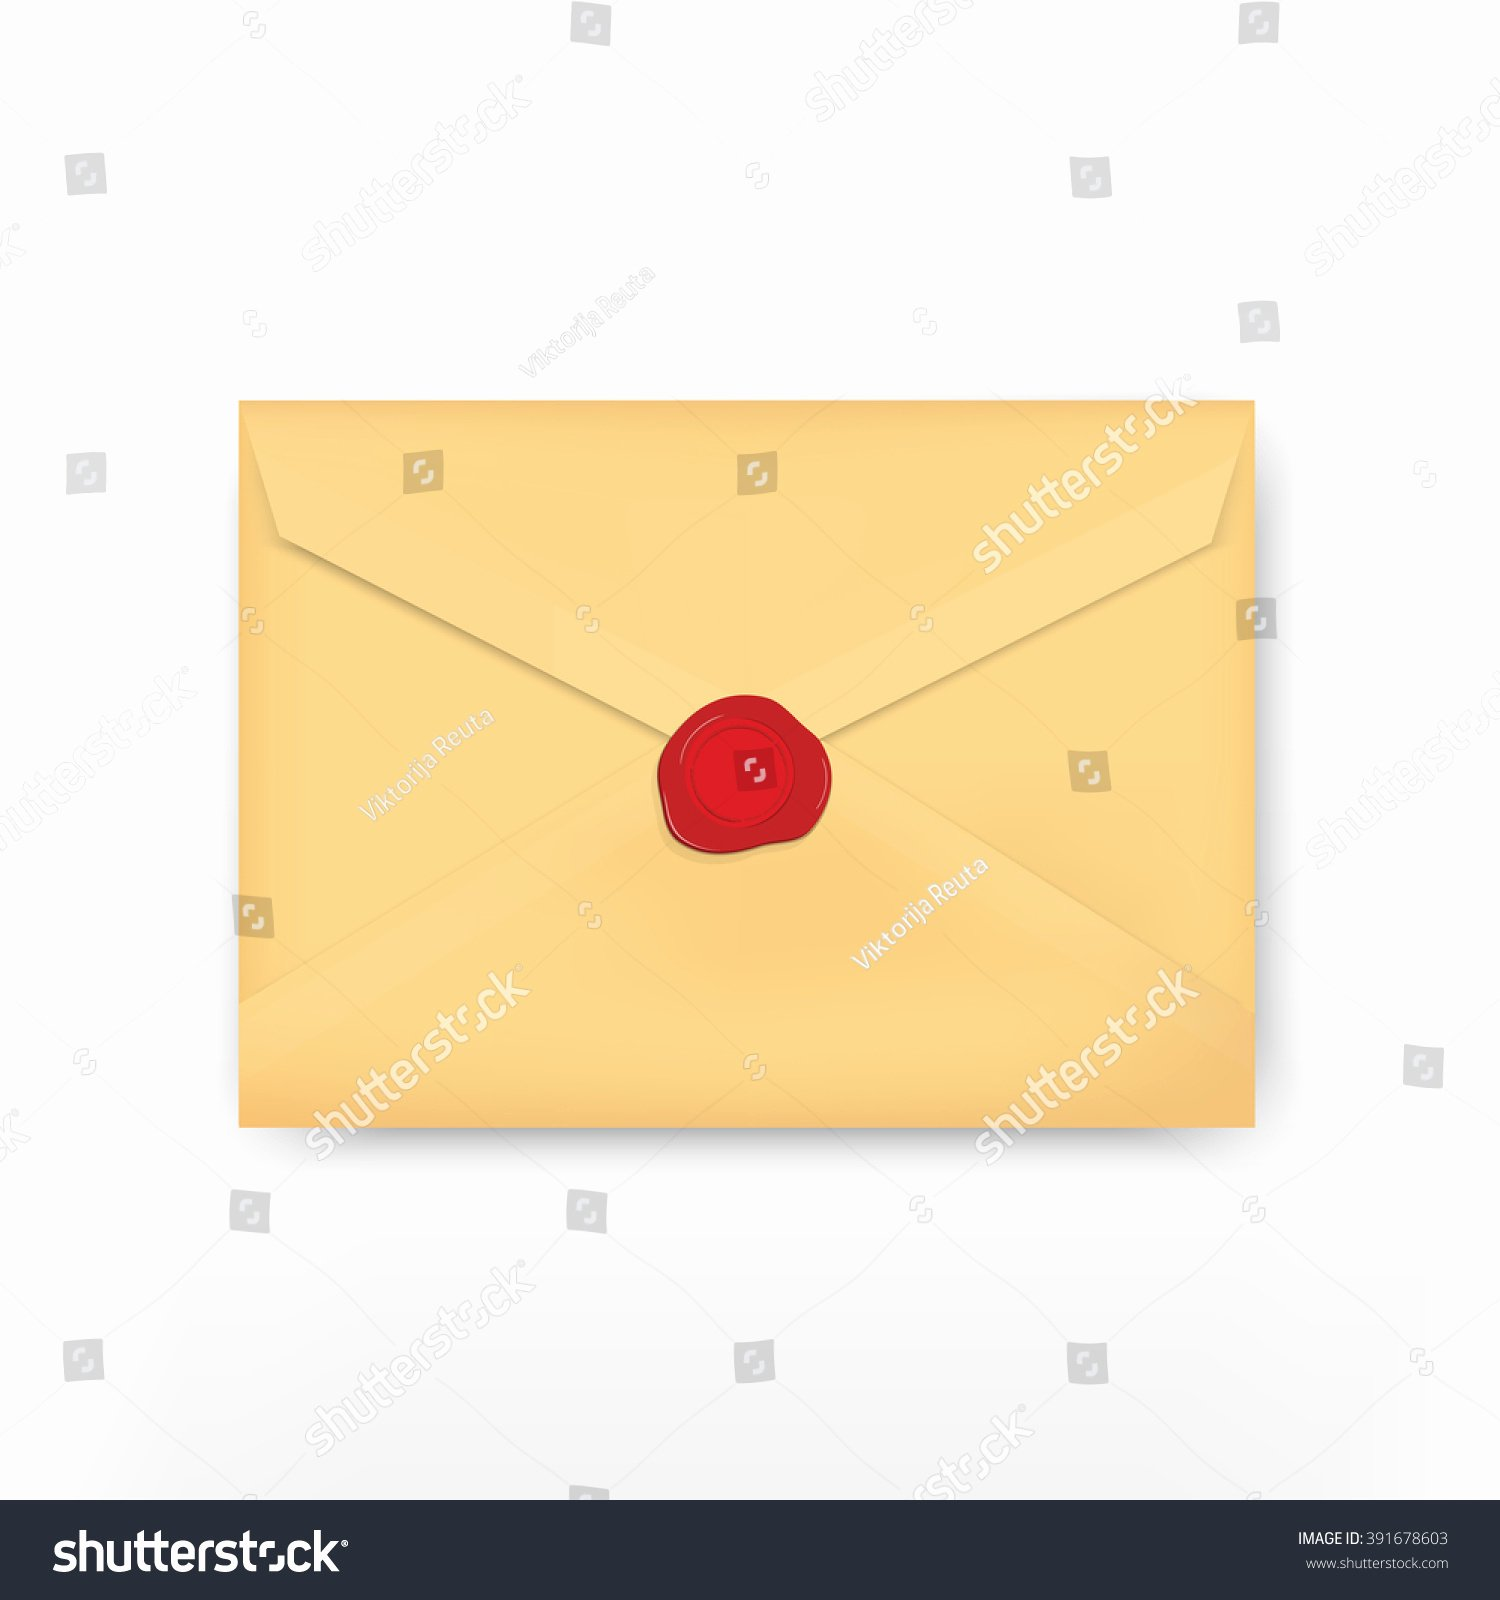 Official Seal Template Best Of Vector Illustration Brown Golden Envelope isolated Stock